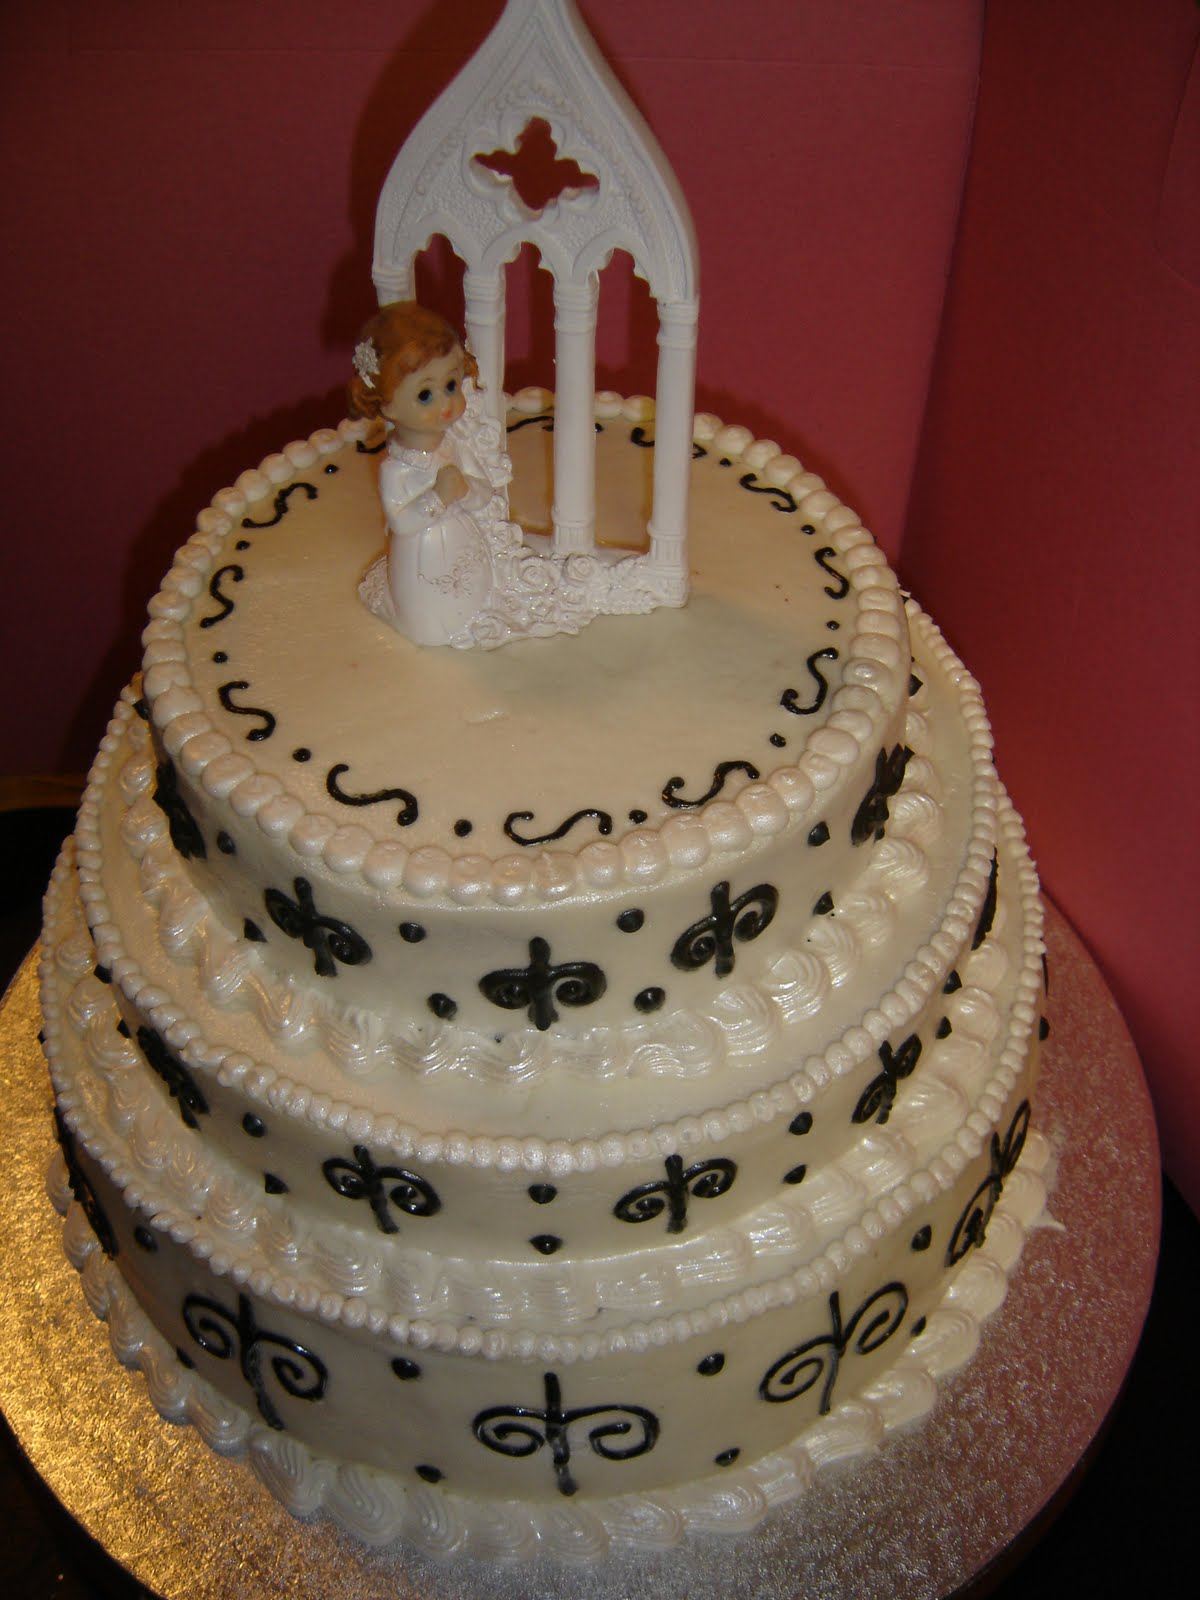 Tasty Pastry Cakes And More First Communion Cake